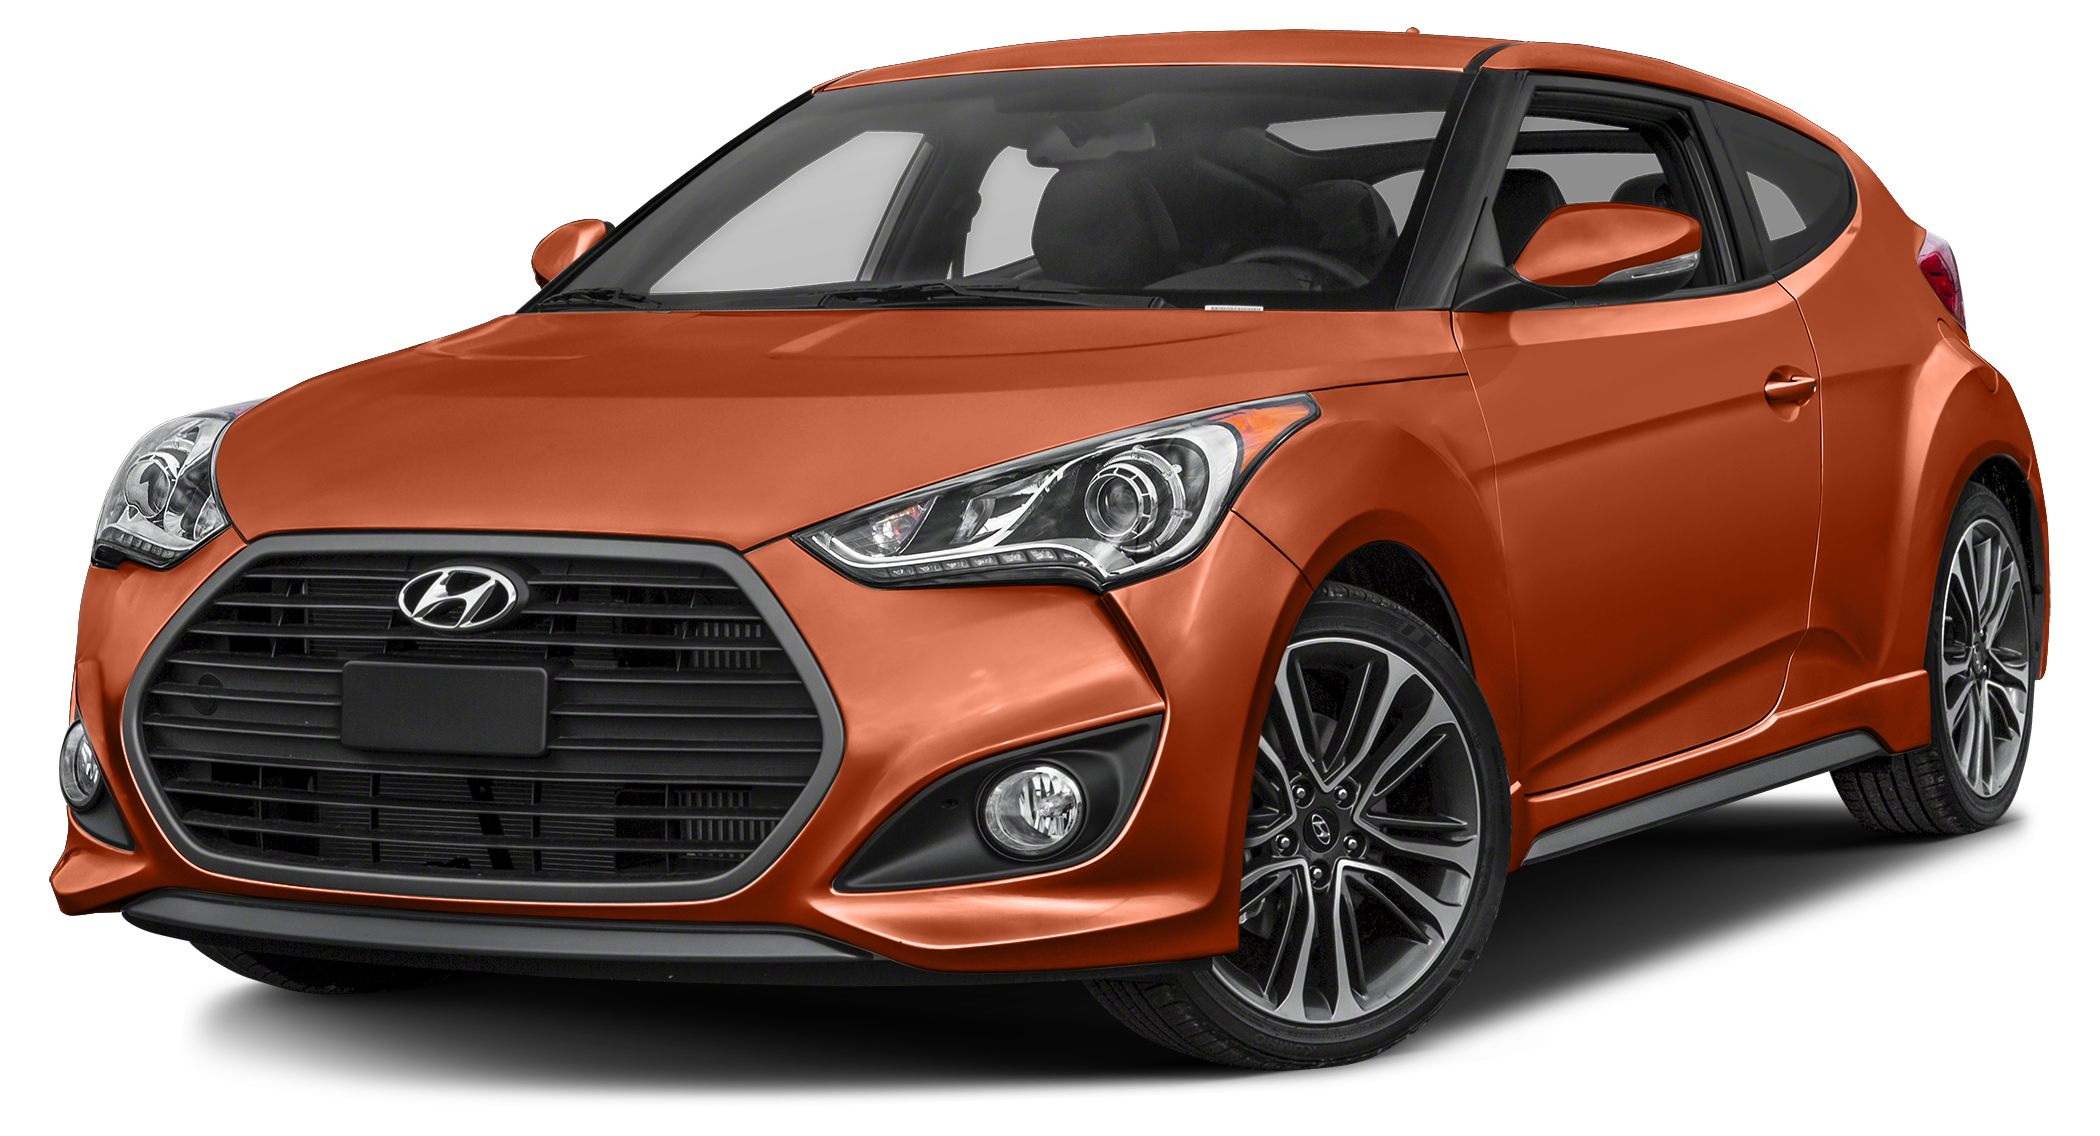 2016 Hyundai Veloster Turbo Turbocharged Stick shift How nice is this Just in this handsome-lo